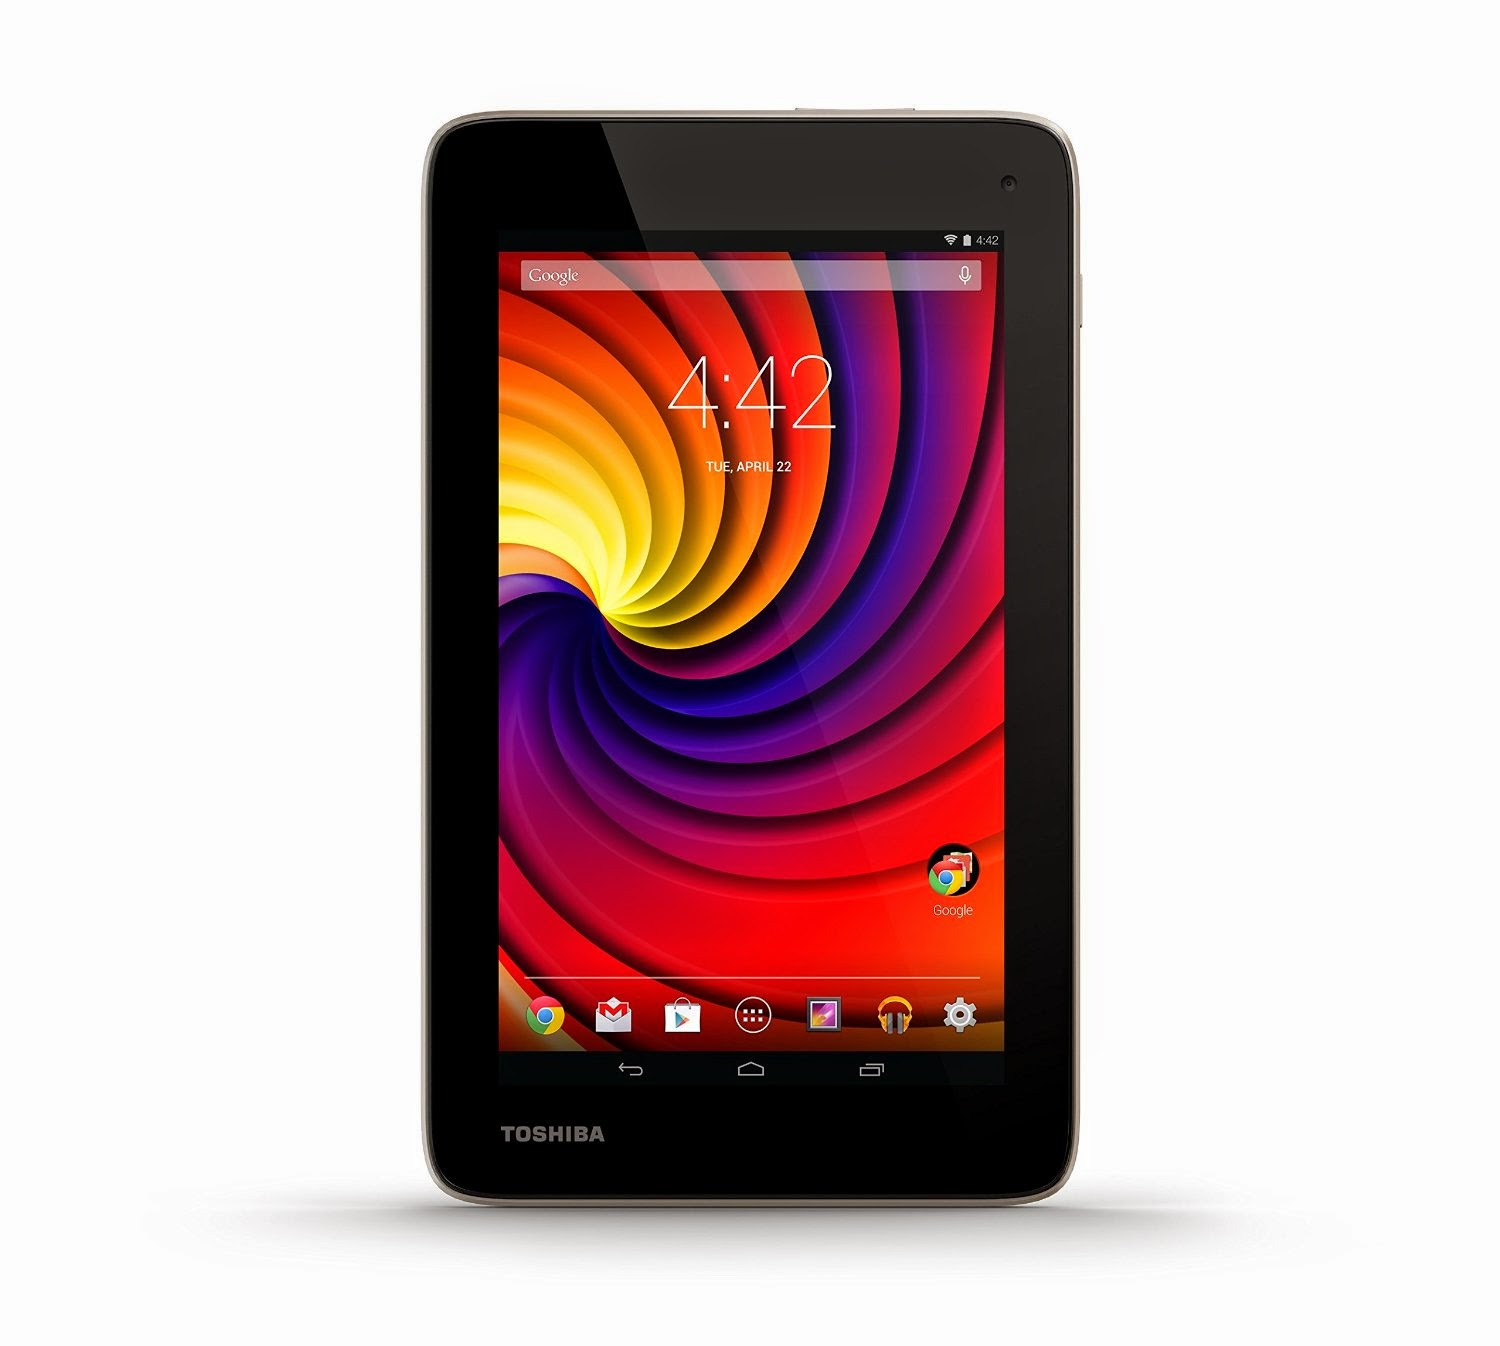 Toshiba Excite Go AT7-C8 7.0-Inch 8 GB